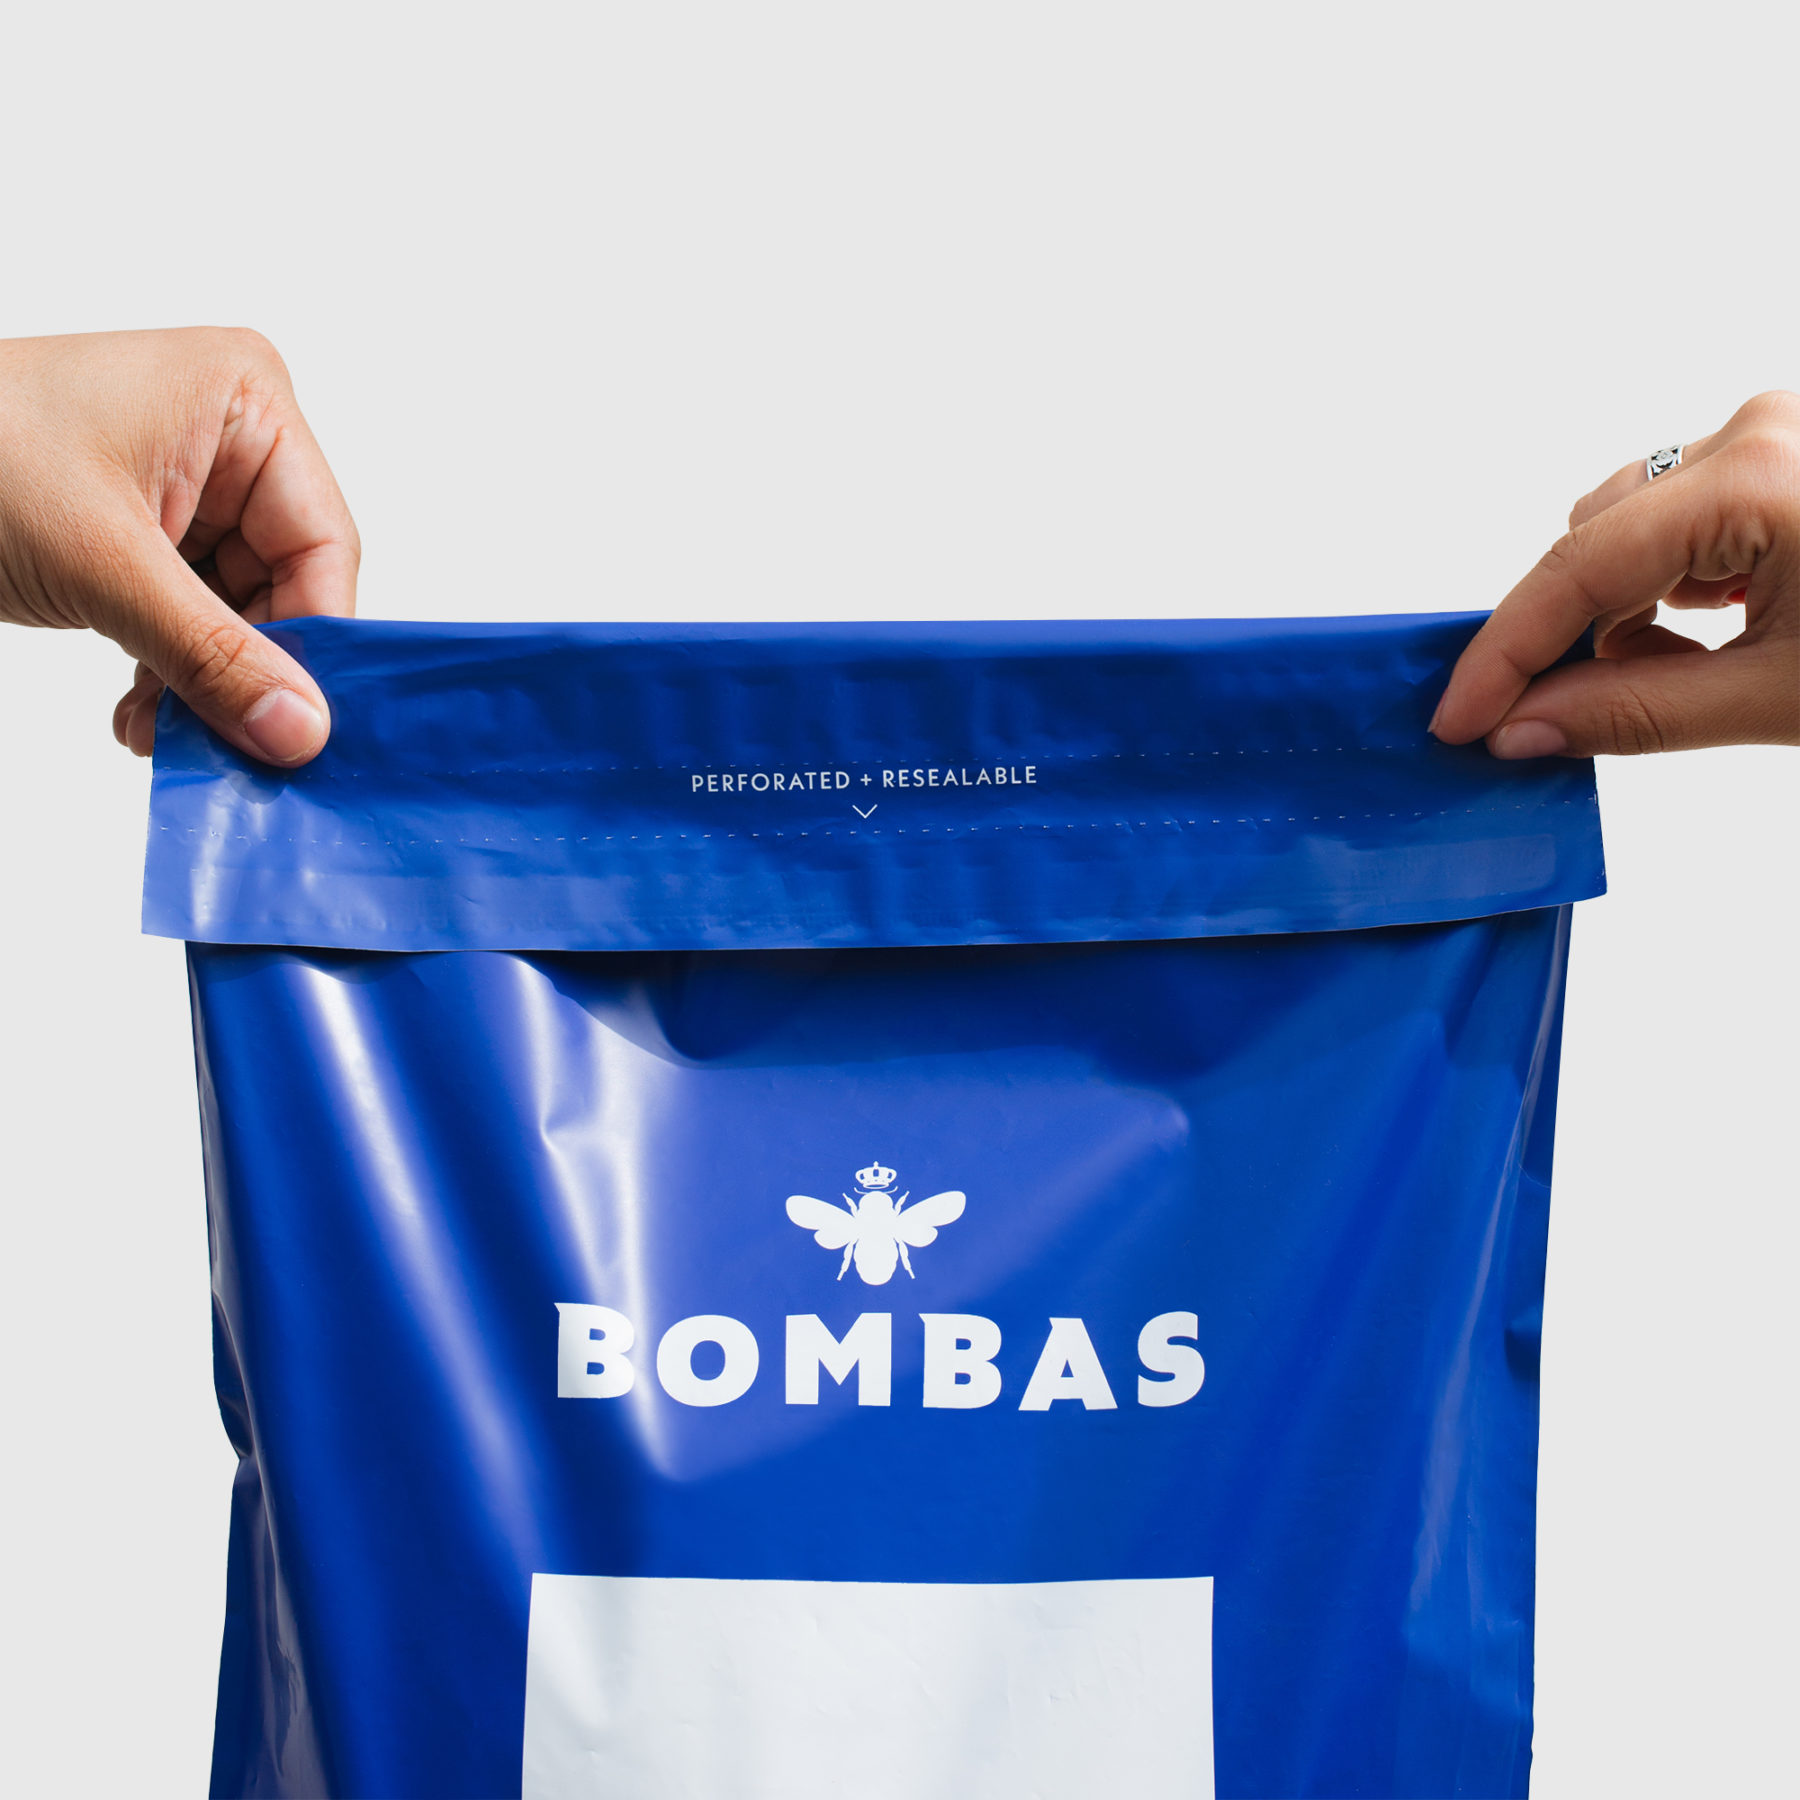 Bombas uses Lumi to produce Poly Mailers with tear strips and adhesive strips for easy returns. Watch our full unboxing video. Packaging Strategies for Efficient Returns